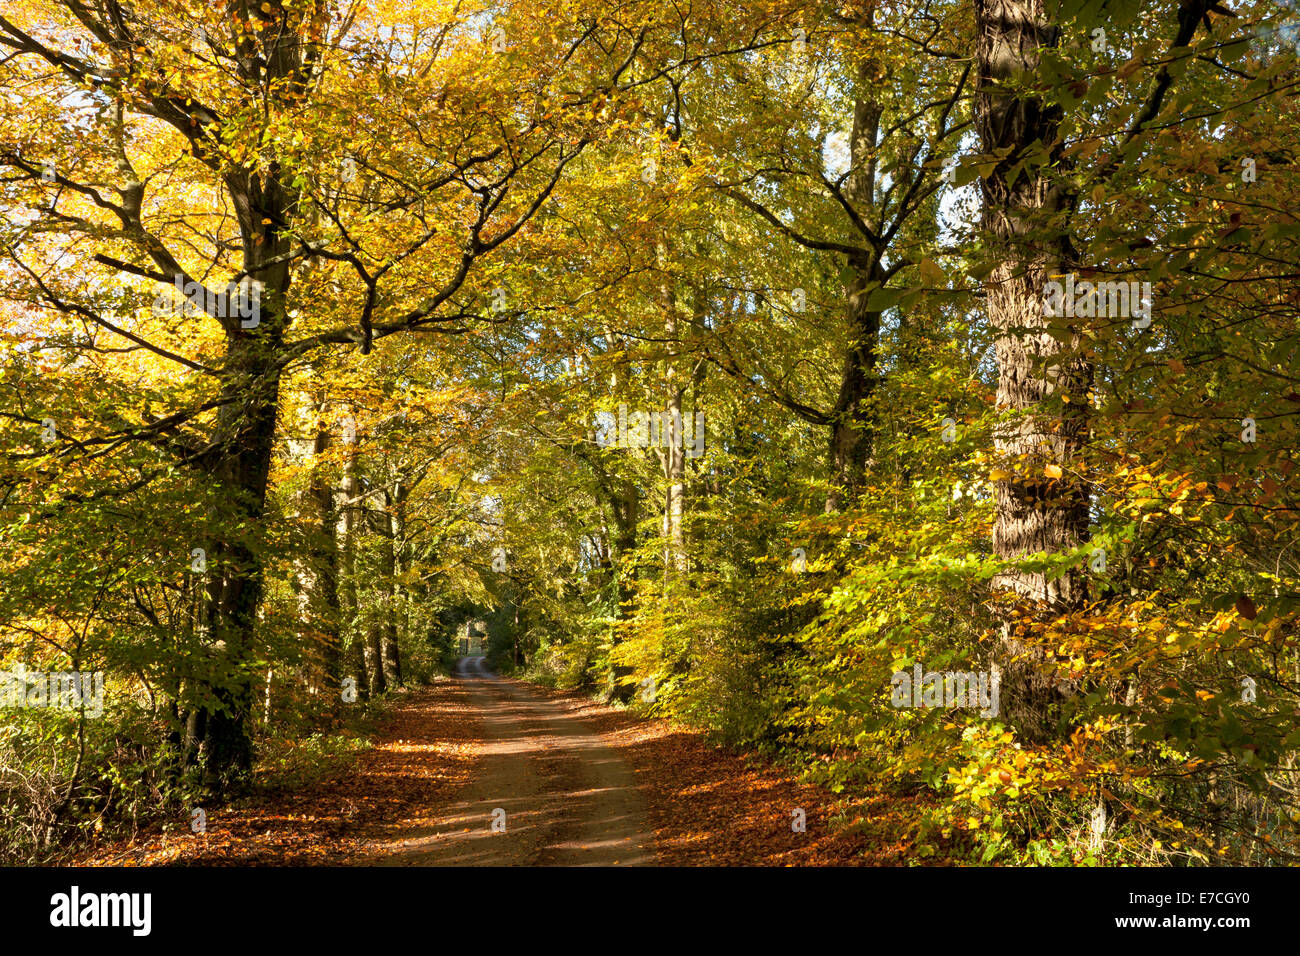 Autumn sunlight in a wooded lane at Berwick St. James in Wiltshire, England. - Stock Image